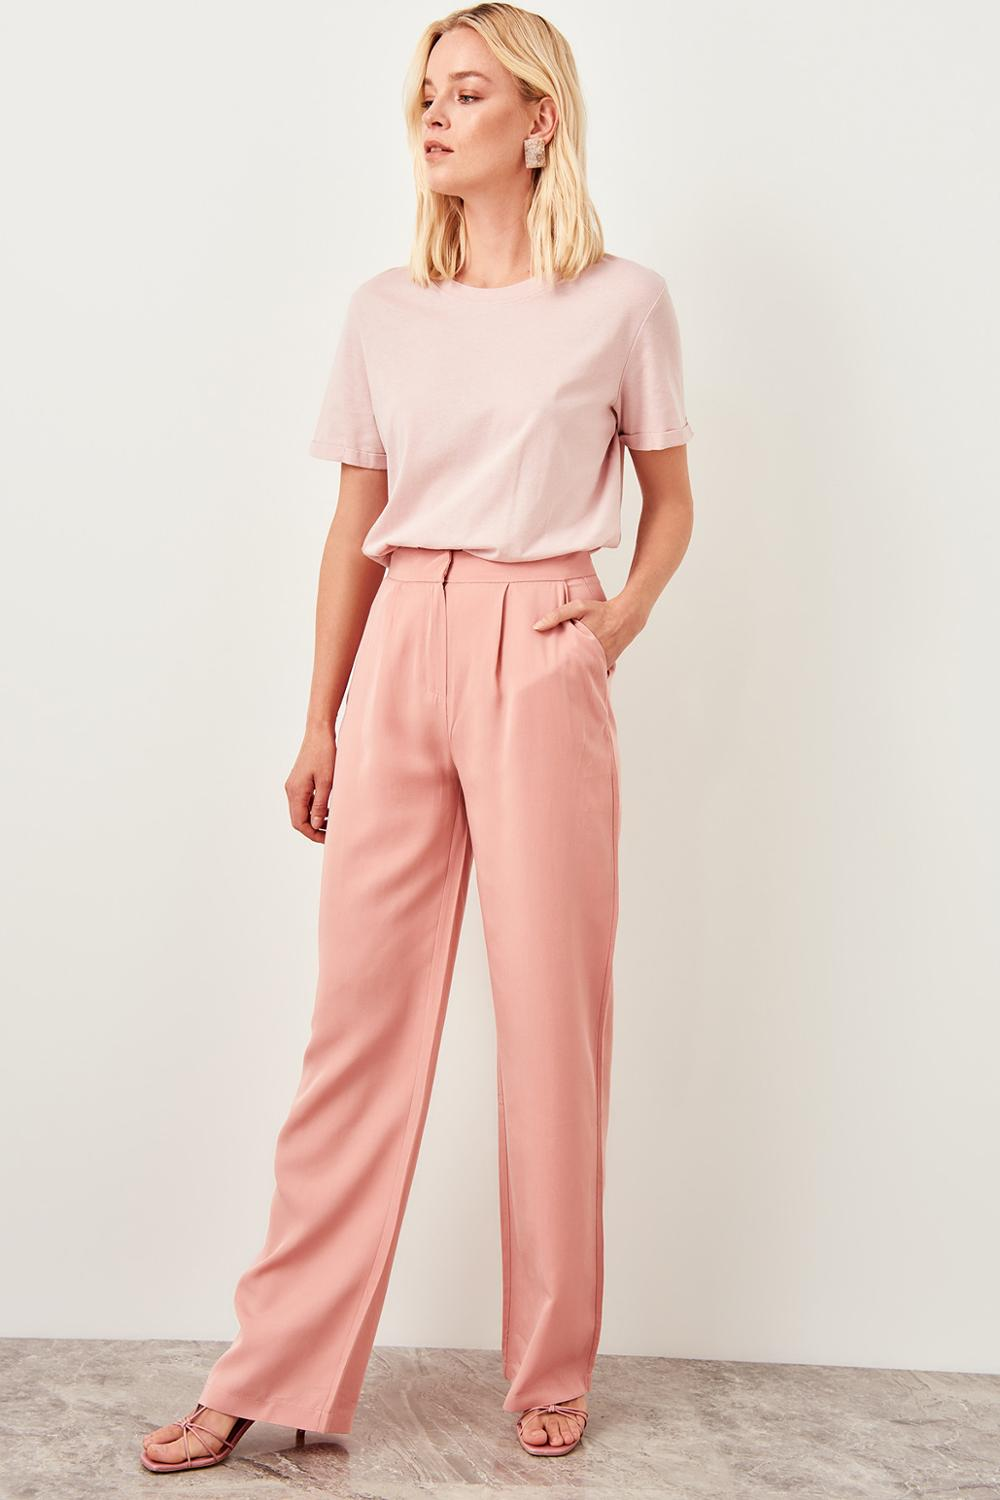 Salmon Pink High Waist Straight Leg Pants - emuuz.com